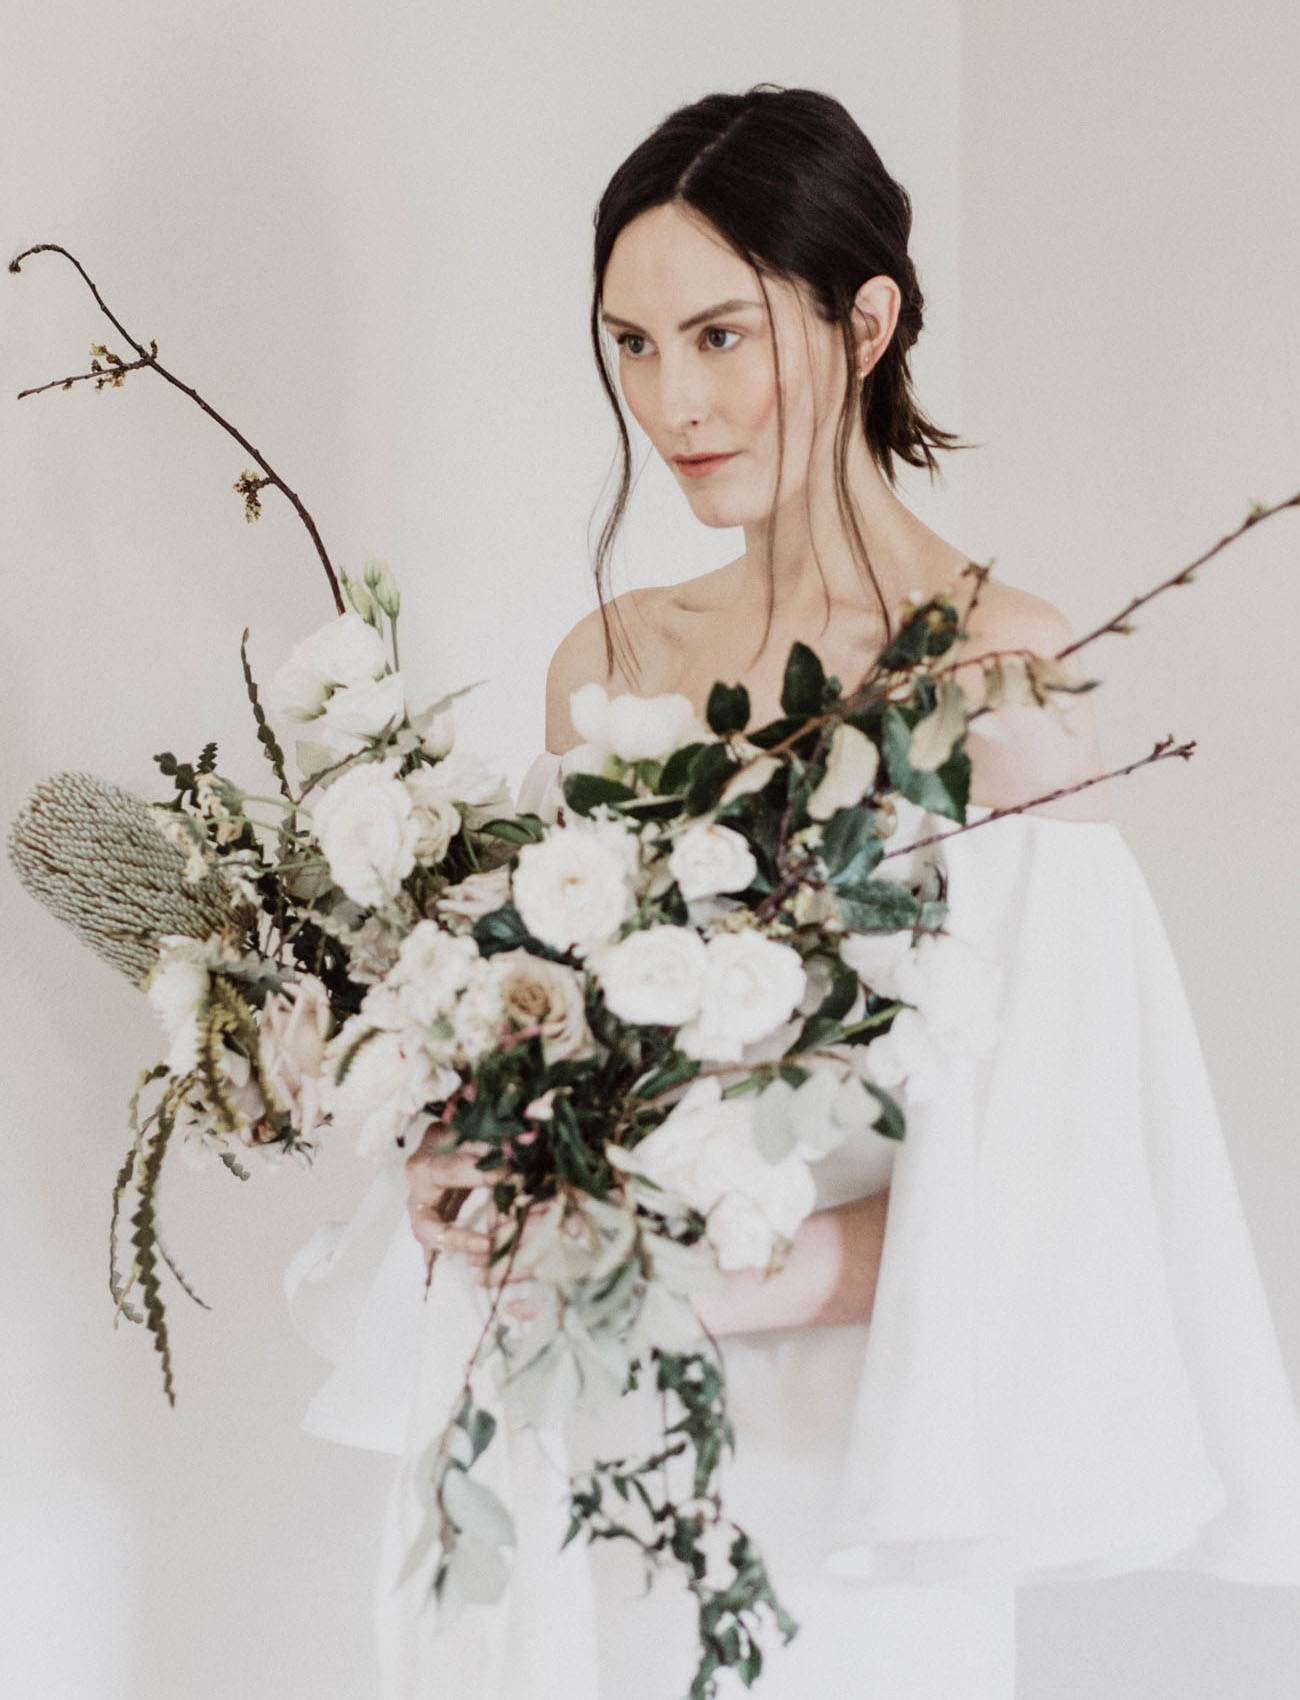 Minimal & Moden Vow Renewal - Featuring:Planner: Bash Co EventsPhotographer: aseaofloveDress: Houghton NYCHAMU: Walter FuentesPaper: Alli K